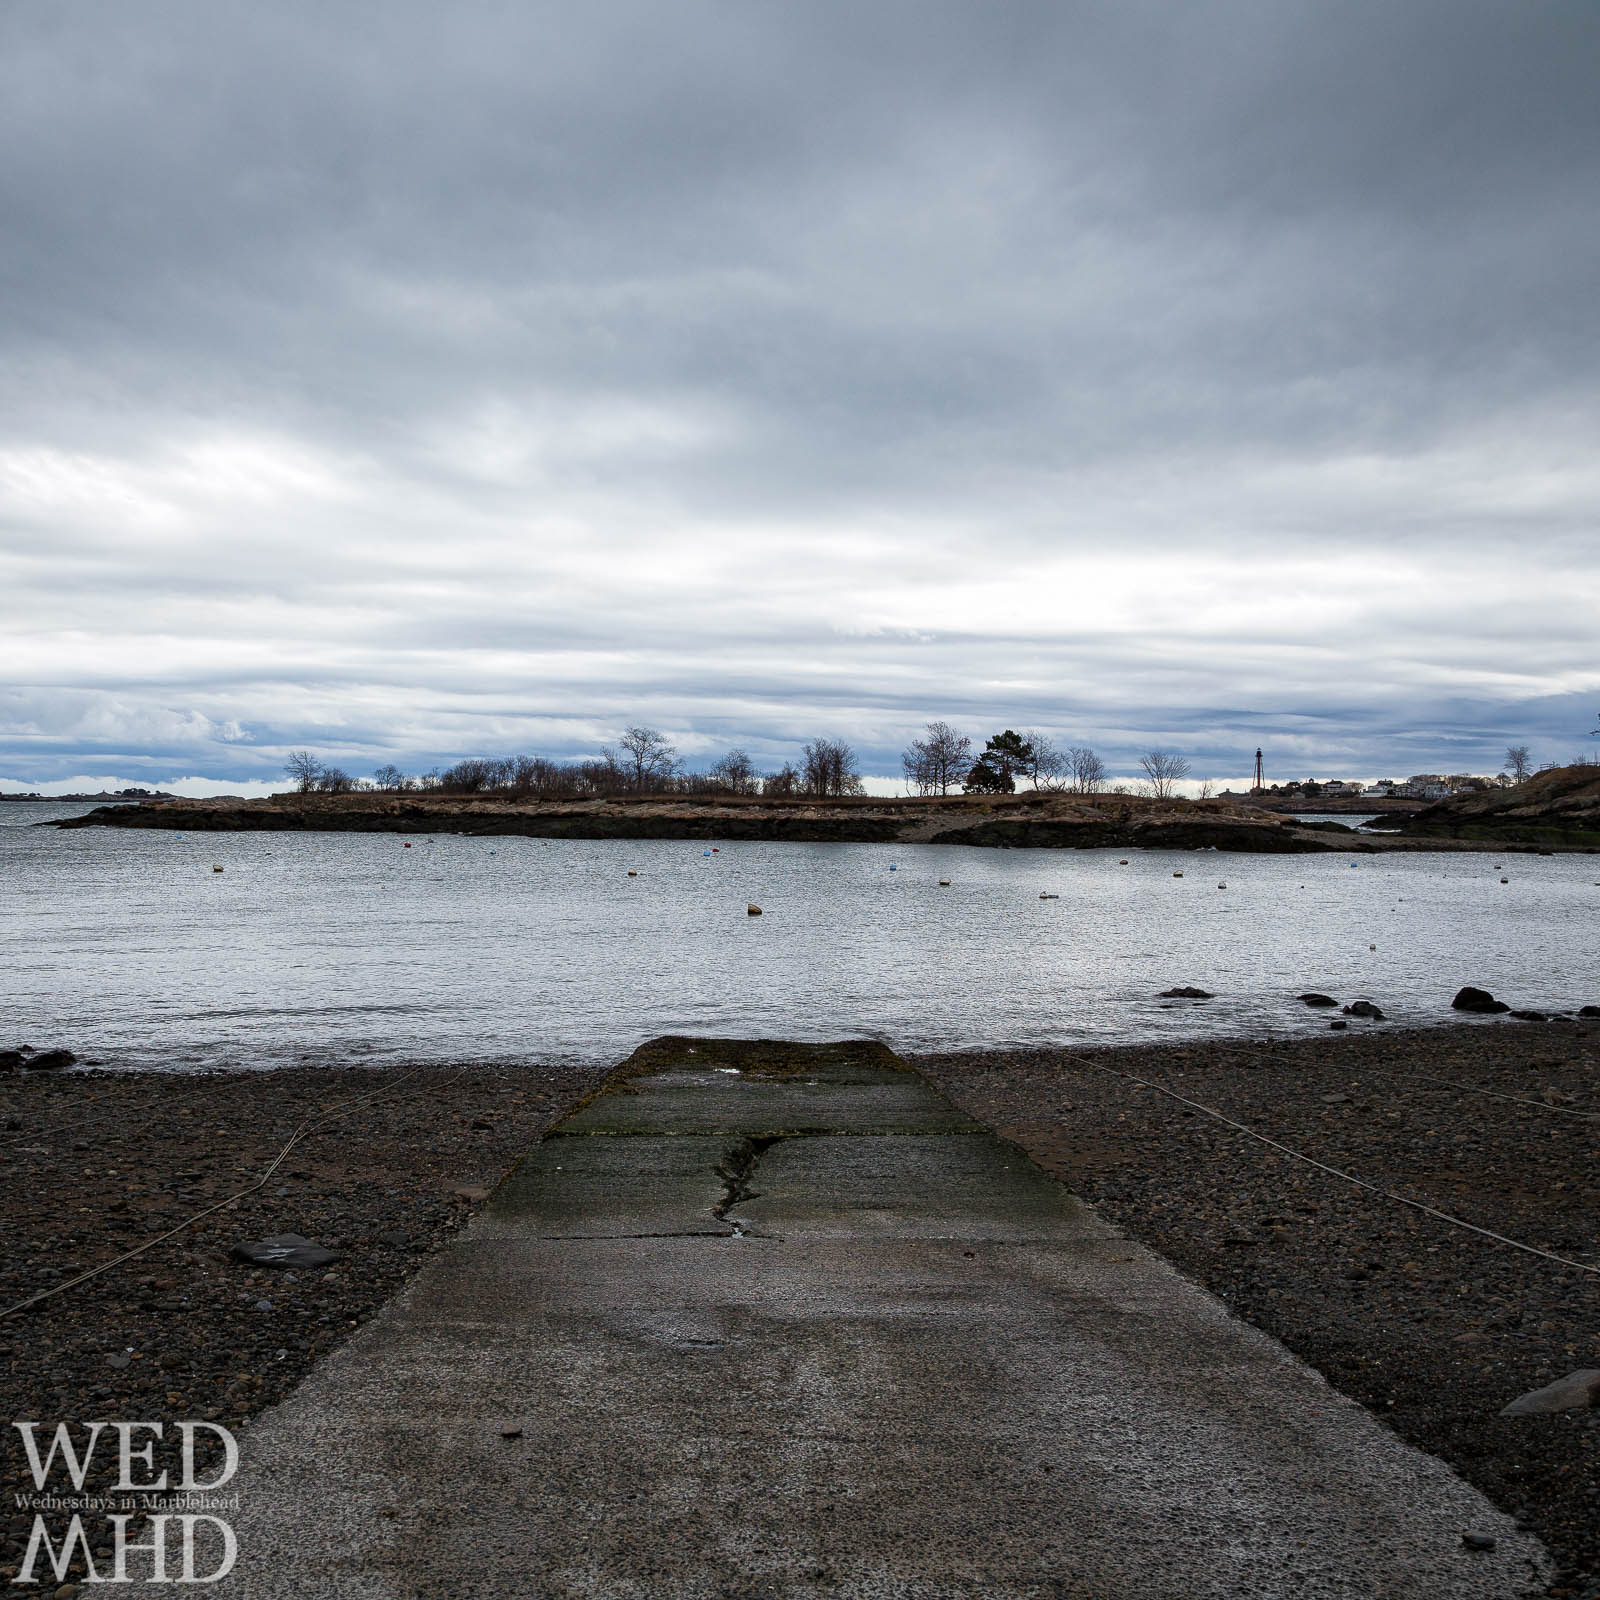 A boat ramp  in the area known as Barnegat leads into First Harbor and Gerry Island under grey skies